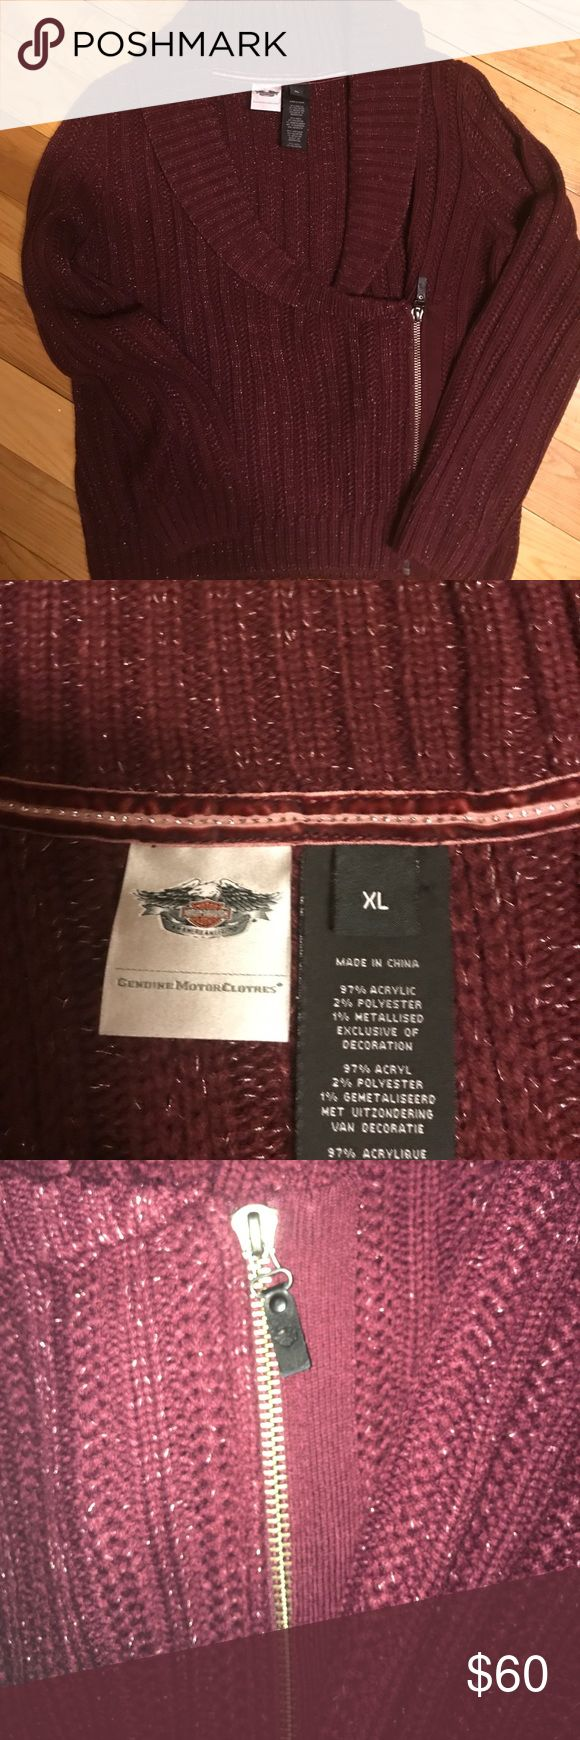 H-D HEAVY BEAUTIFUL MOTO ZIP SWEATER H-D BURGUNDY AND SILVER STRAND HEAVY MOTO ZIP SWEATER.. VERY VERY WARM ..NEVER WORN TRUE TO SIZE IF NOT RUNS ON BIG SIDE .. VERY SOFT AND STRETCHY ... BE IN STYLE ALL YEAR ROUND WITH YOUR HARLEY COLLECTION!! NO TRADES PRICE IS FIRM Harley-Davidson Sweaters